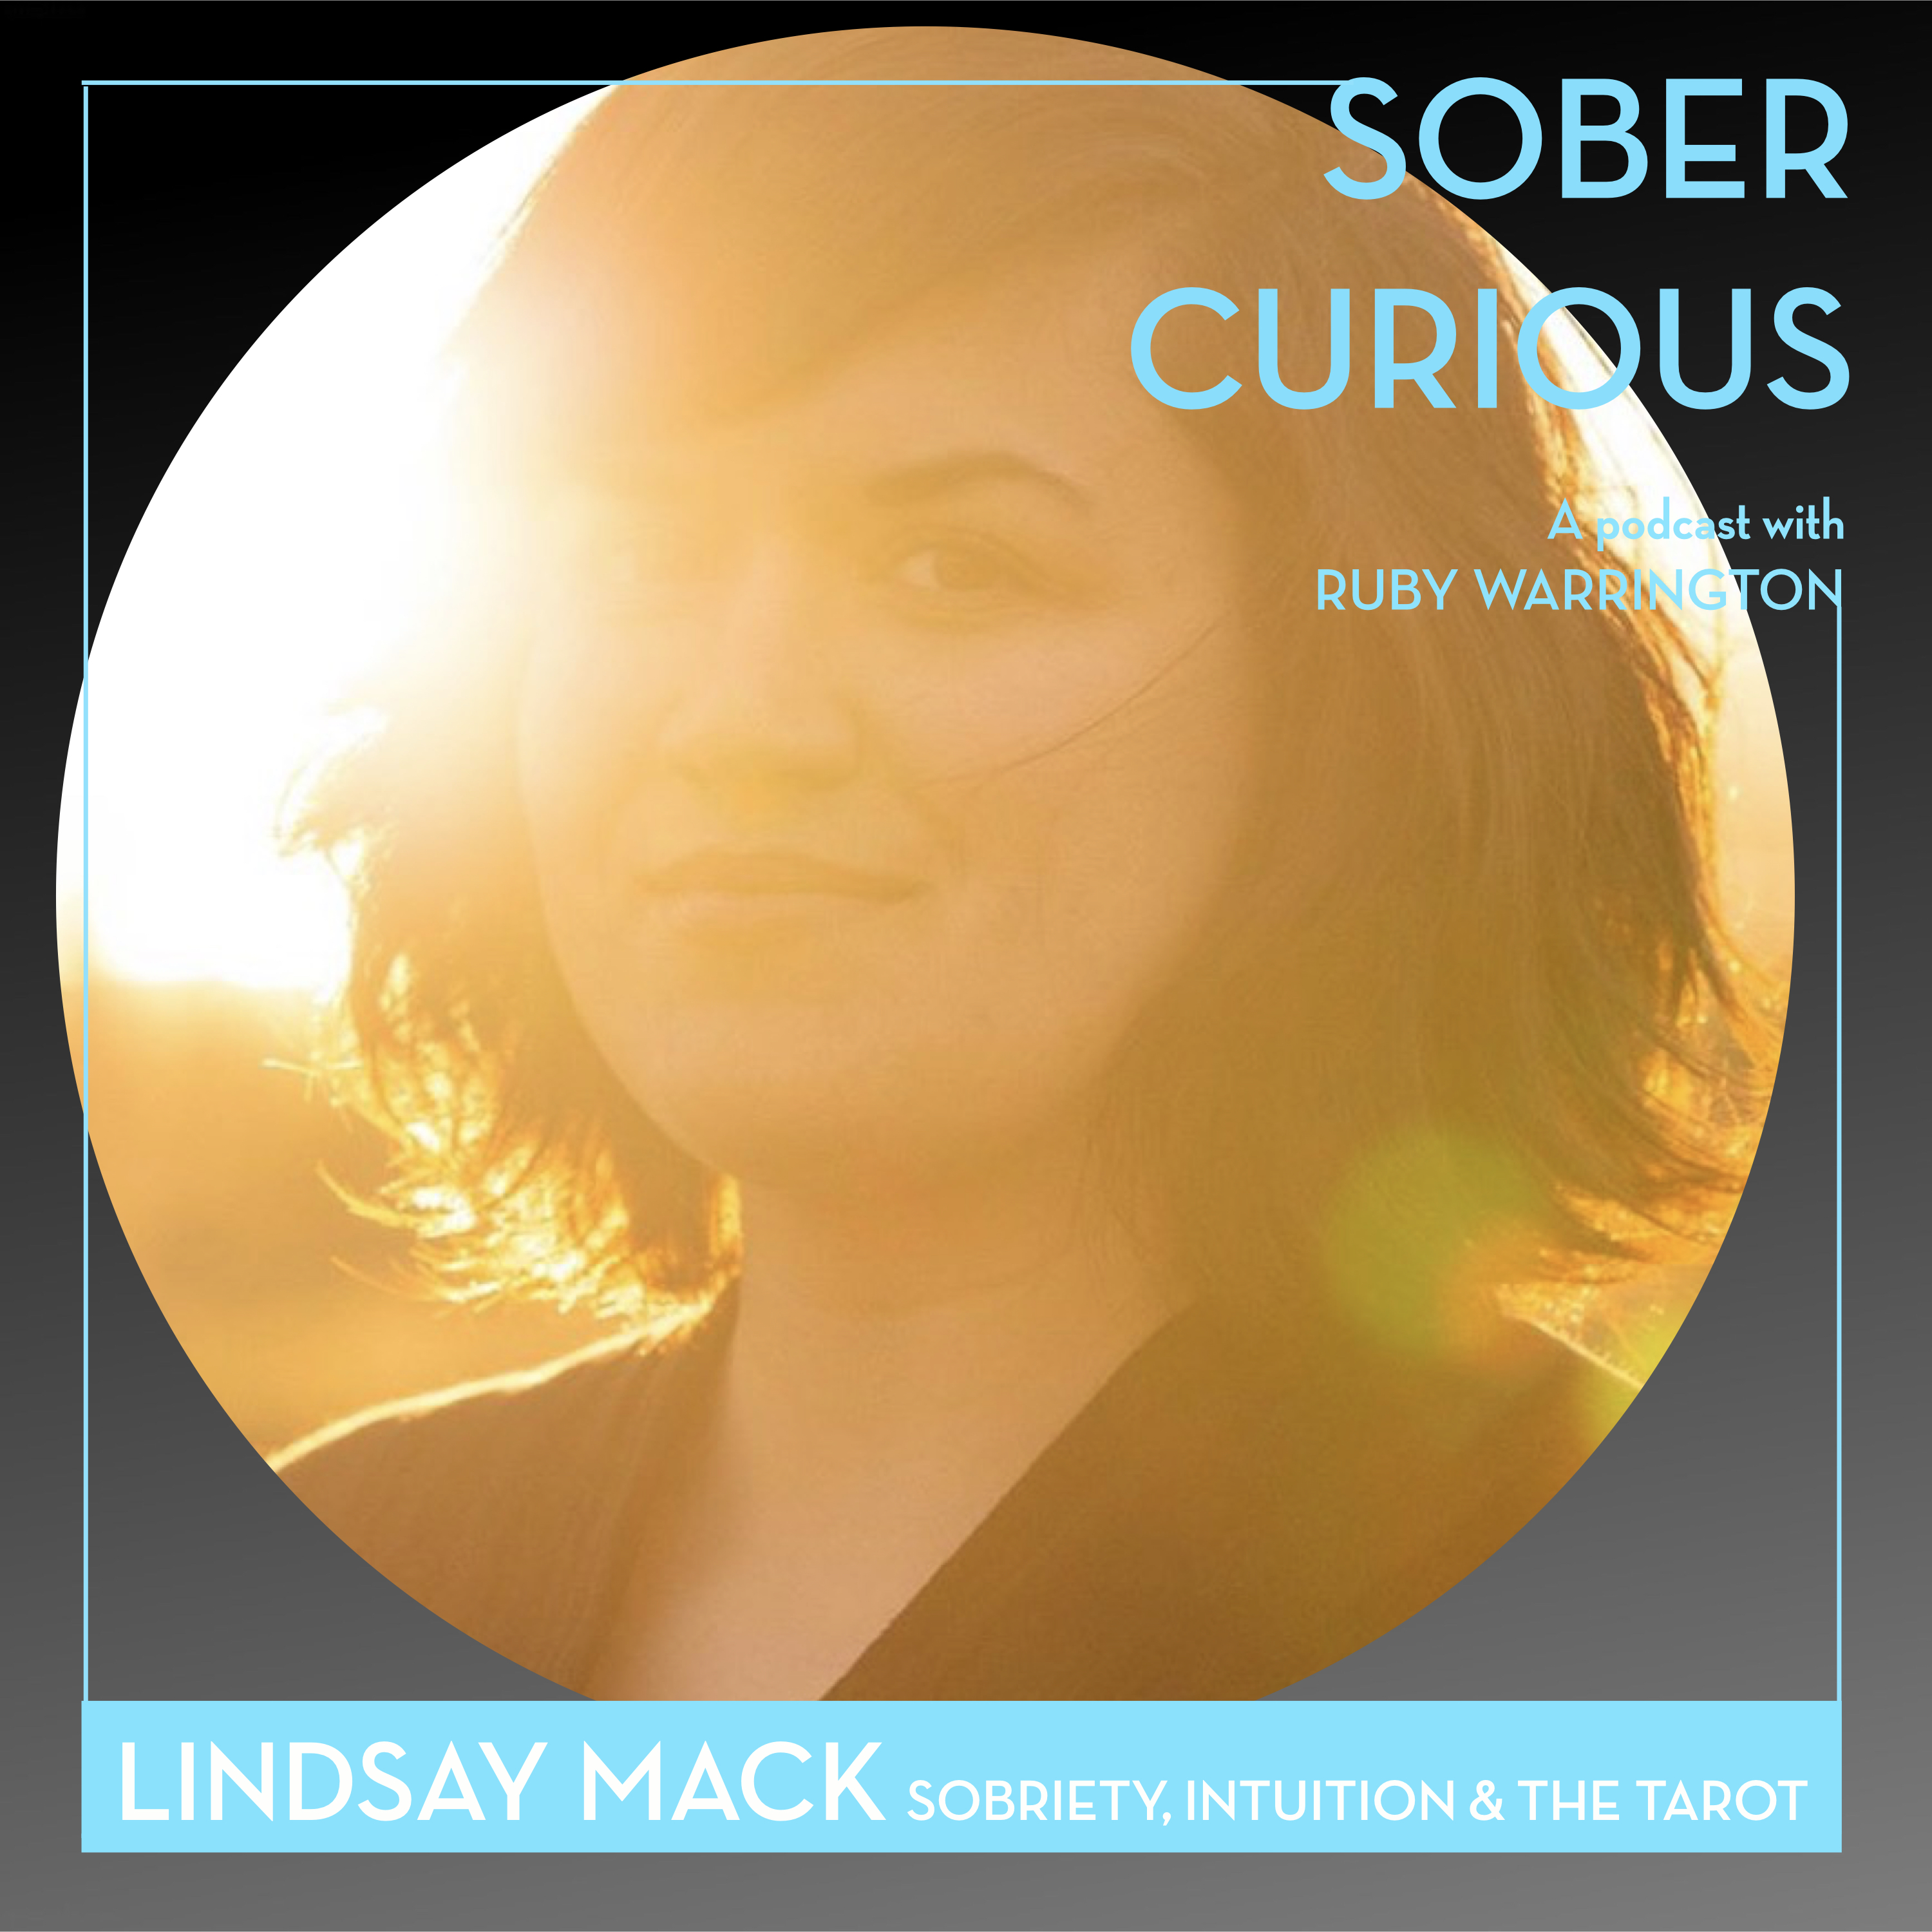 Lindsay mack sober curious podcast Ruby Warrington tarot sobriety intuition